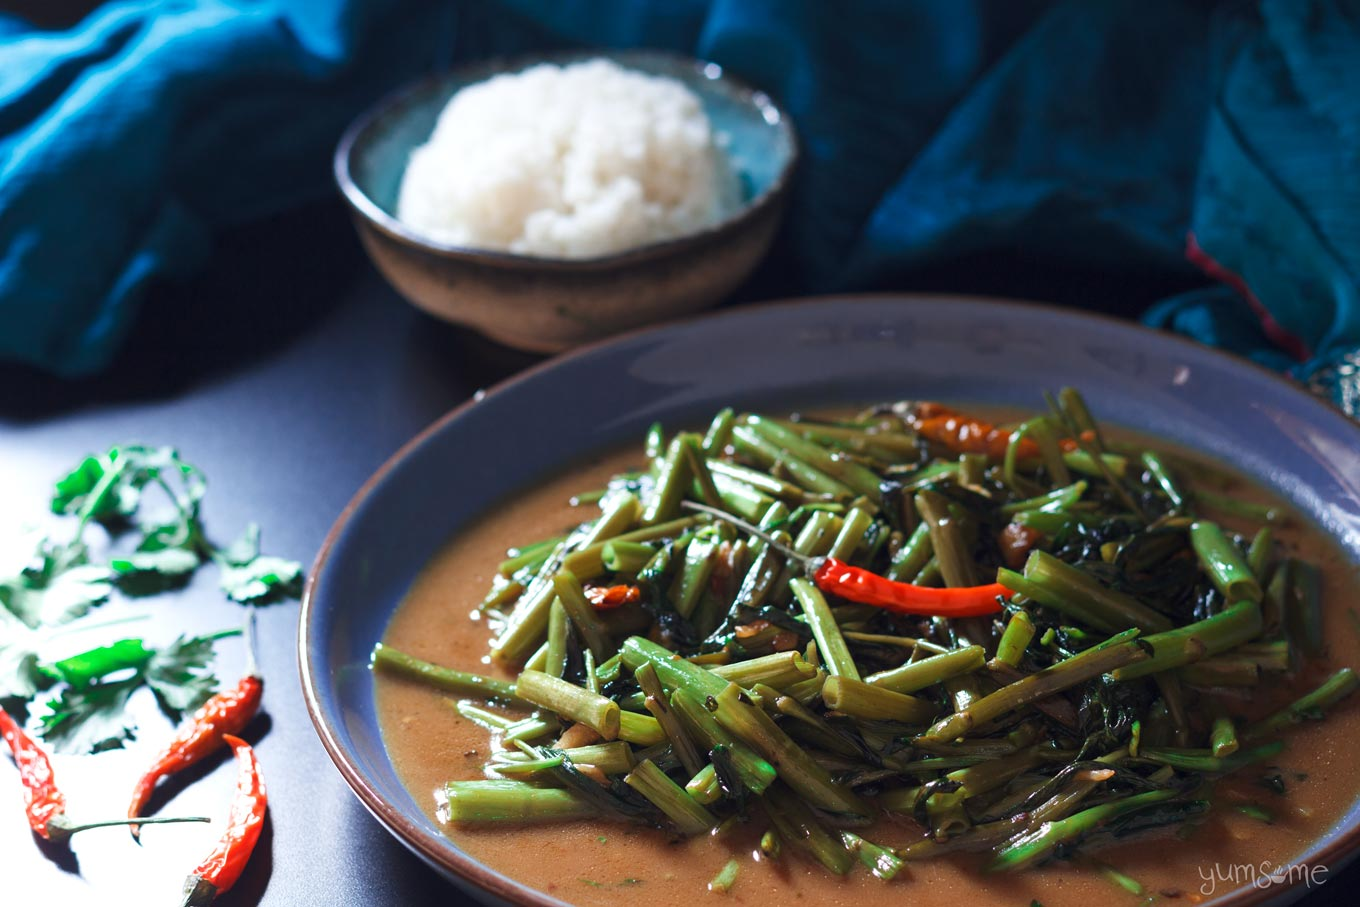 closeup of a plate of vegan Thai stir-fried morning glory | yumsome.com